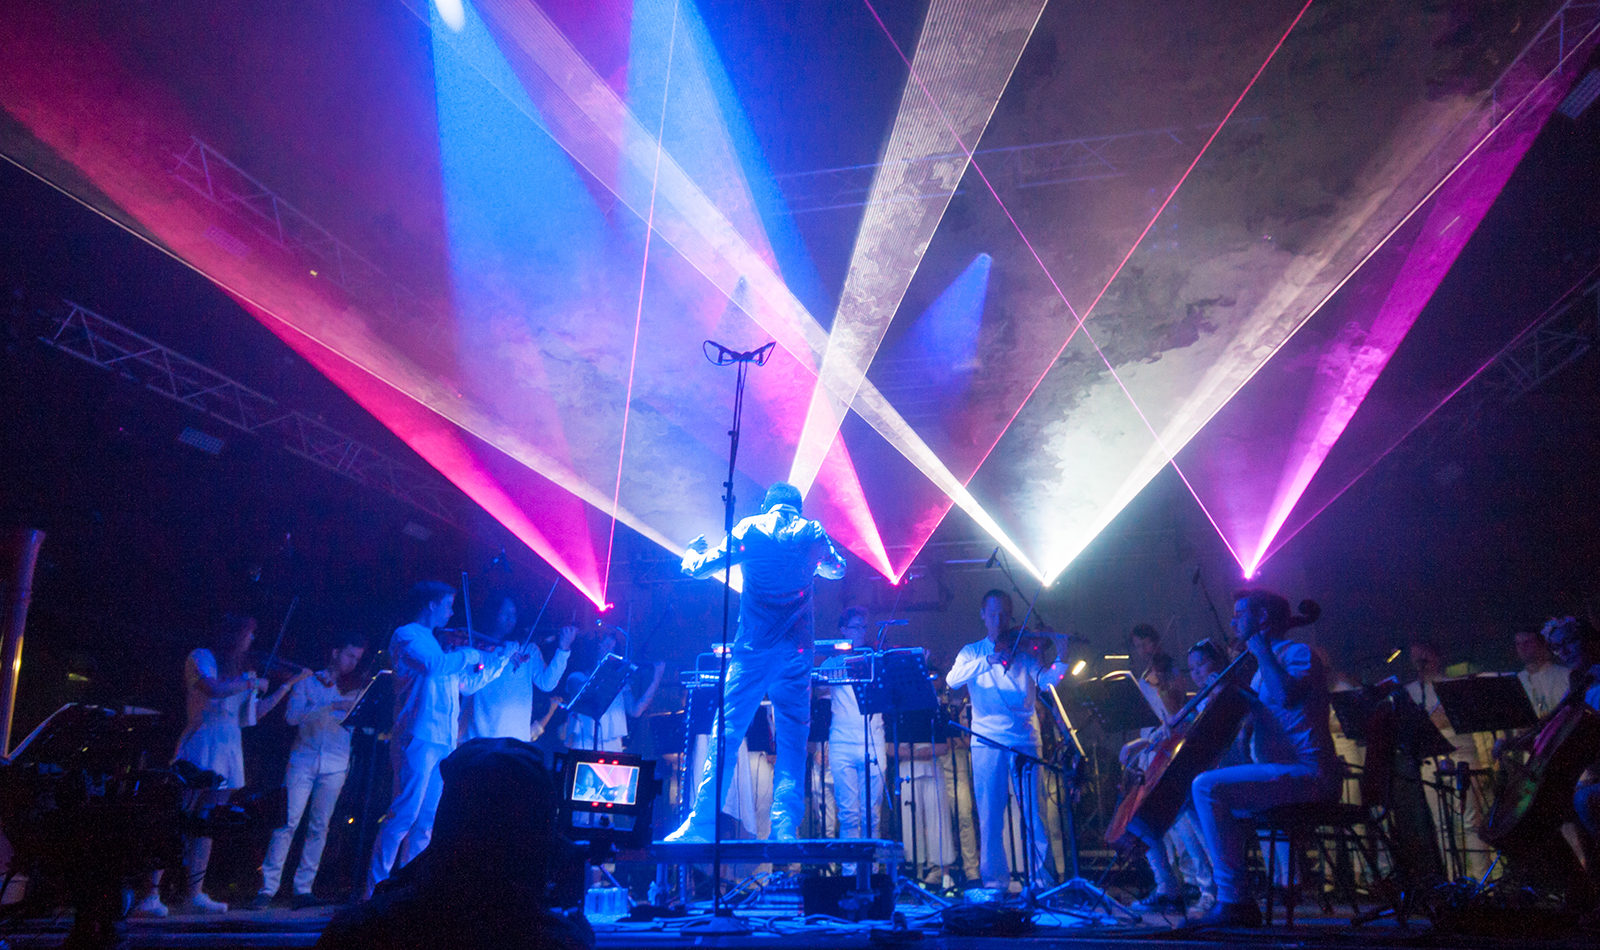 Charles Hazlewood conducts an orchestra all dressed in white. Bright lasers appear to project out of the ensemble above.